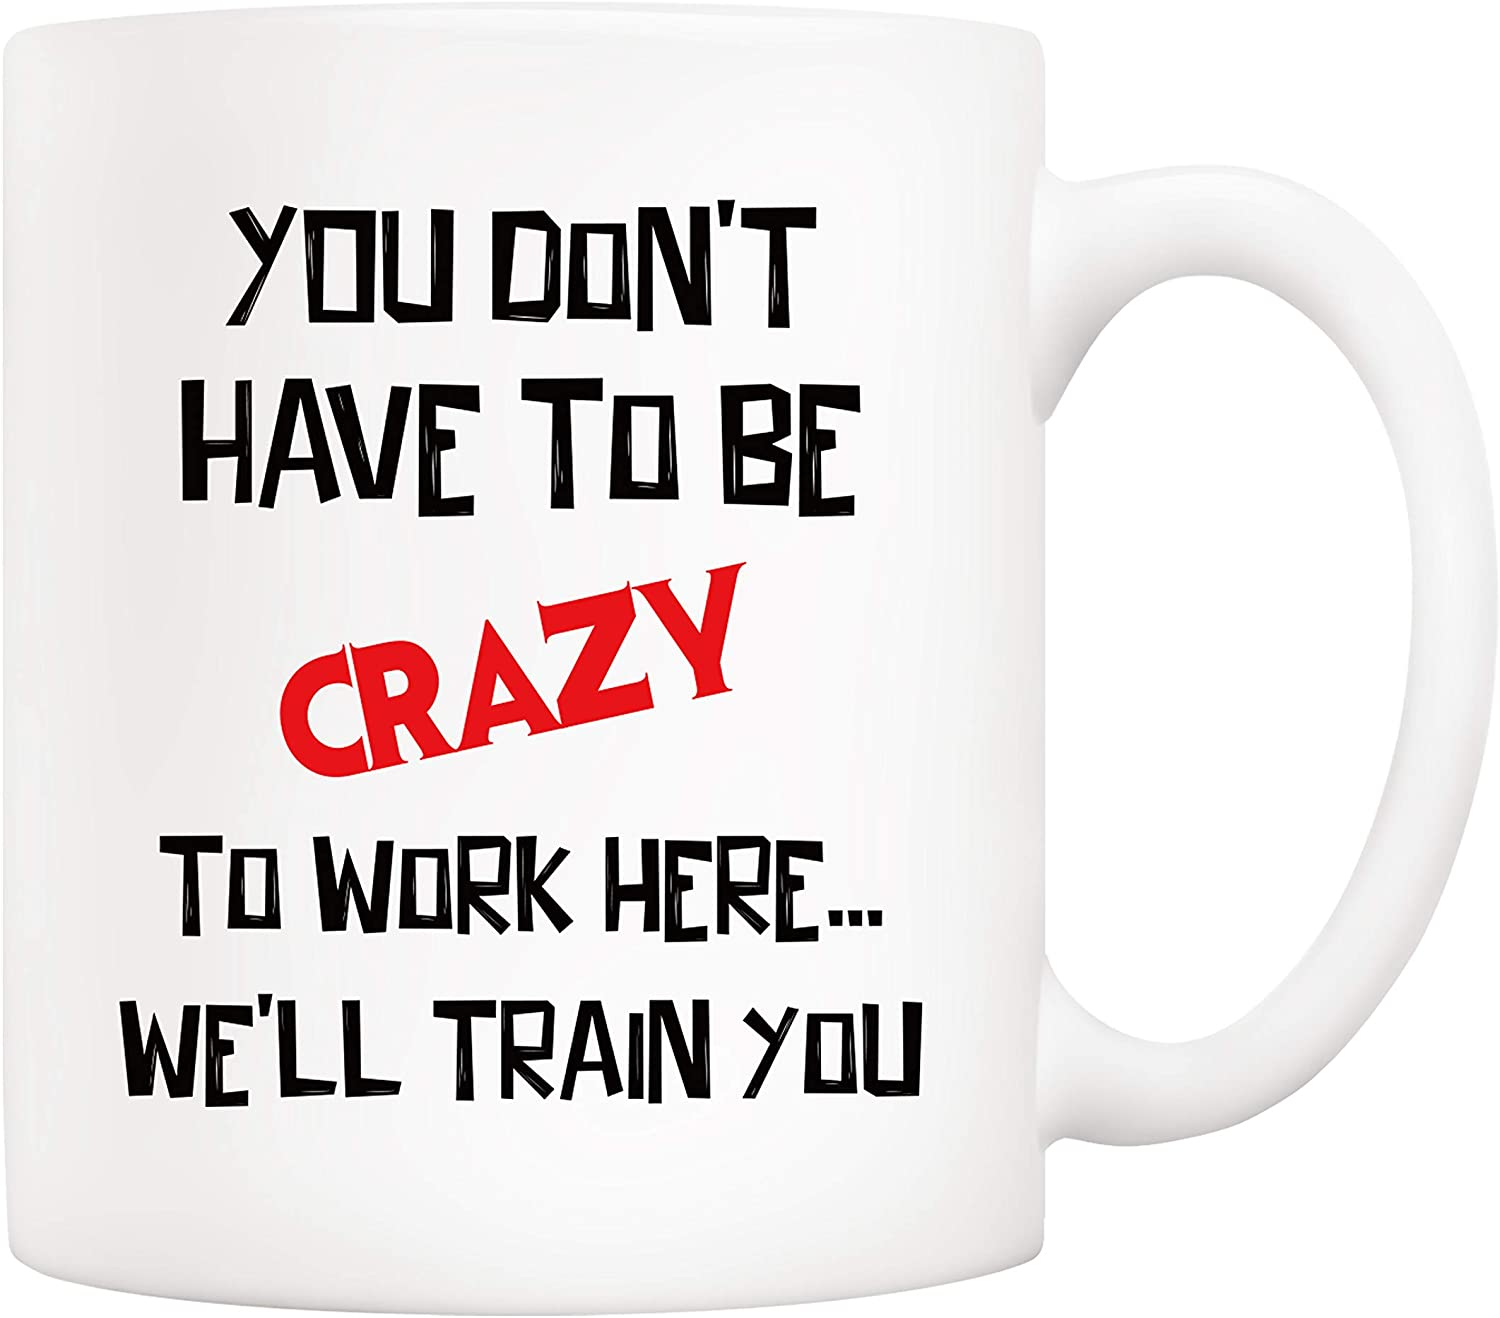 5Aup Christmas Gifts Funny Quote Coffee Mug, You Don't Have to Be Crazy to Work Here… We'll Train You Office Cups 11Oz, Unique Birthday and Holiday Gifts for Coworker Colleague